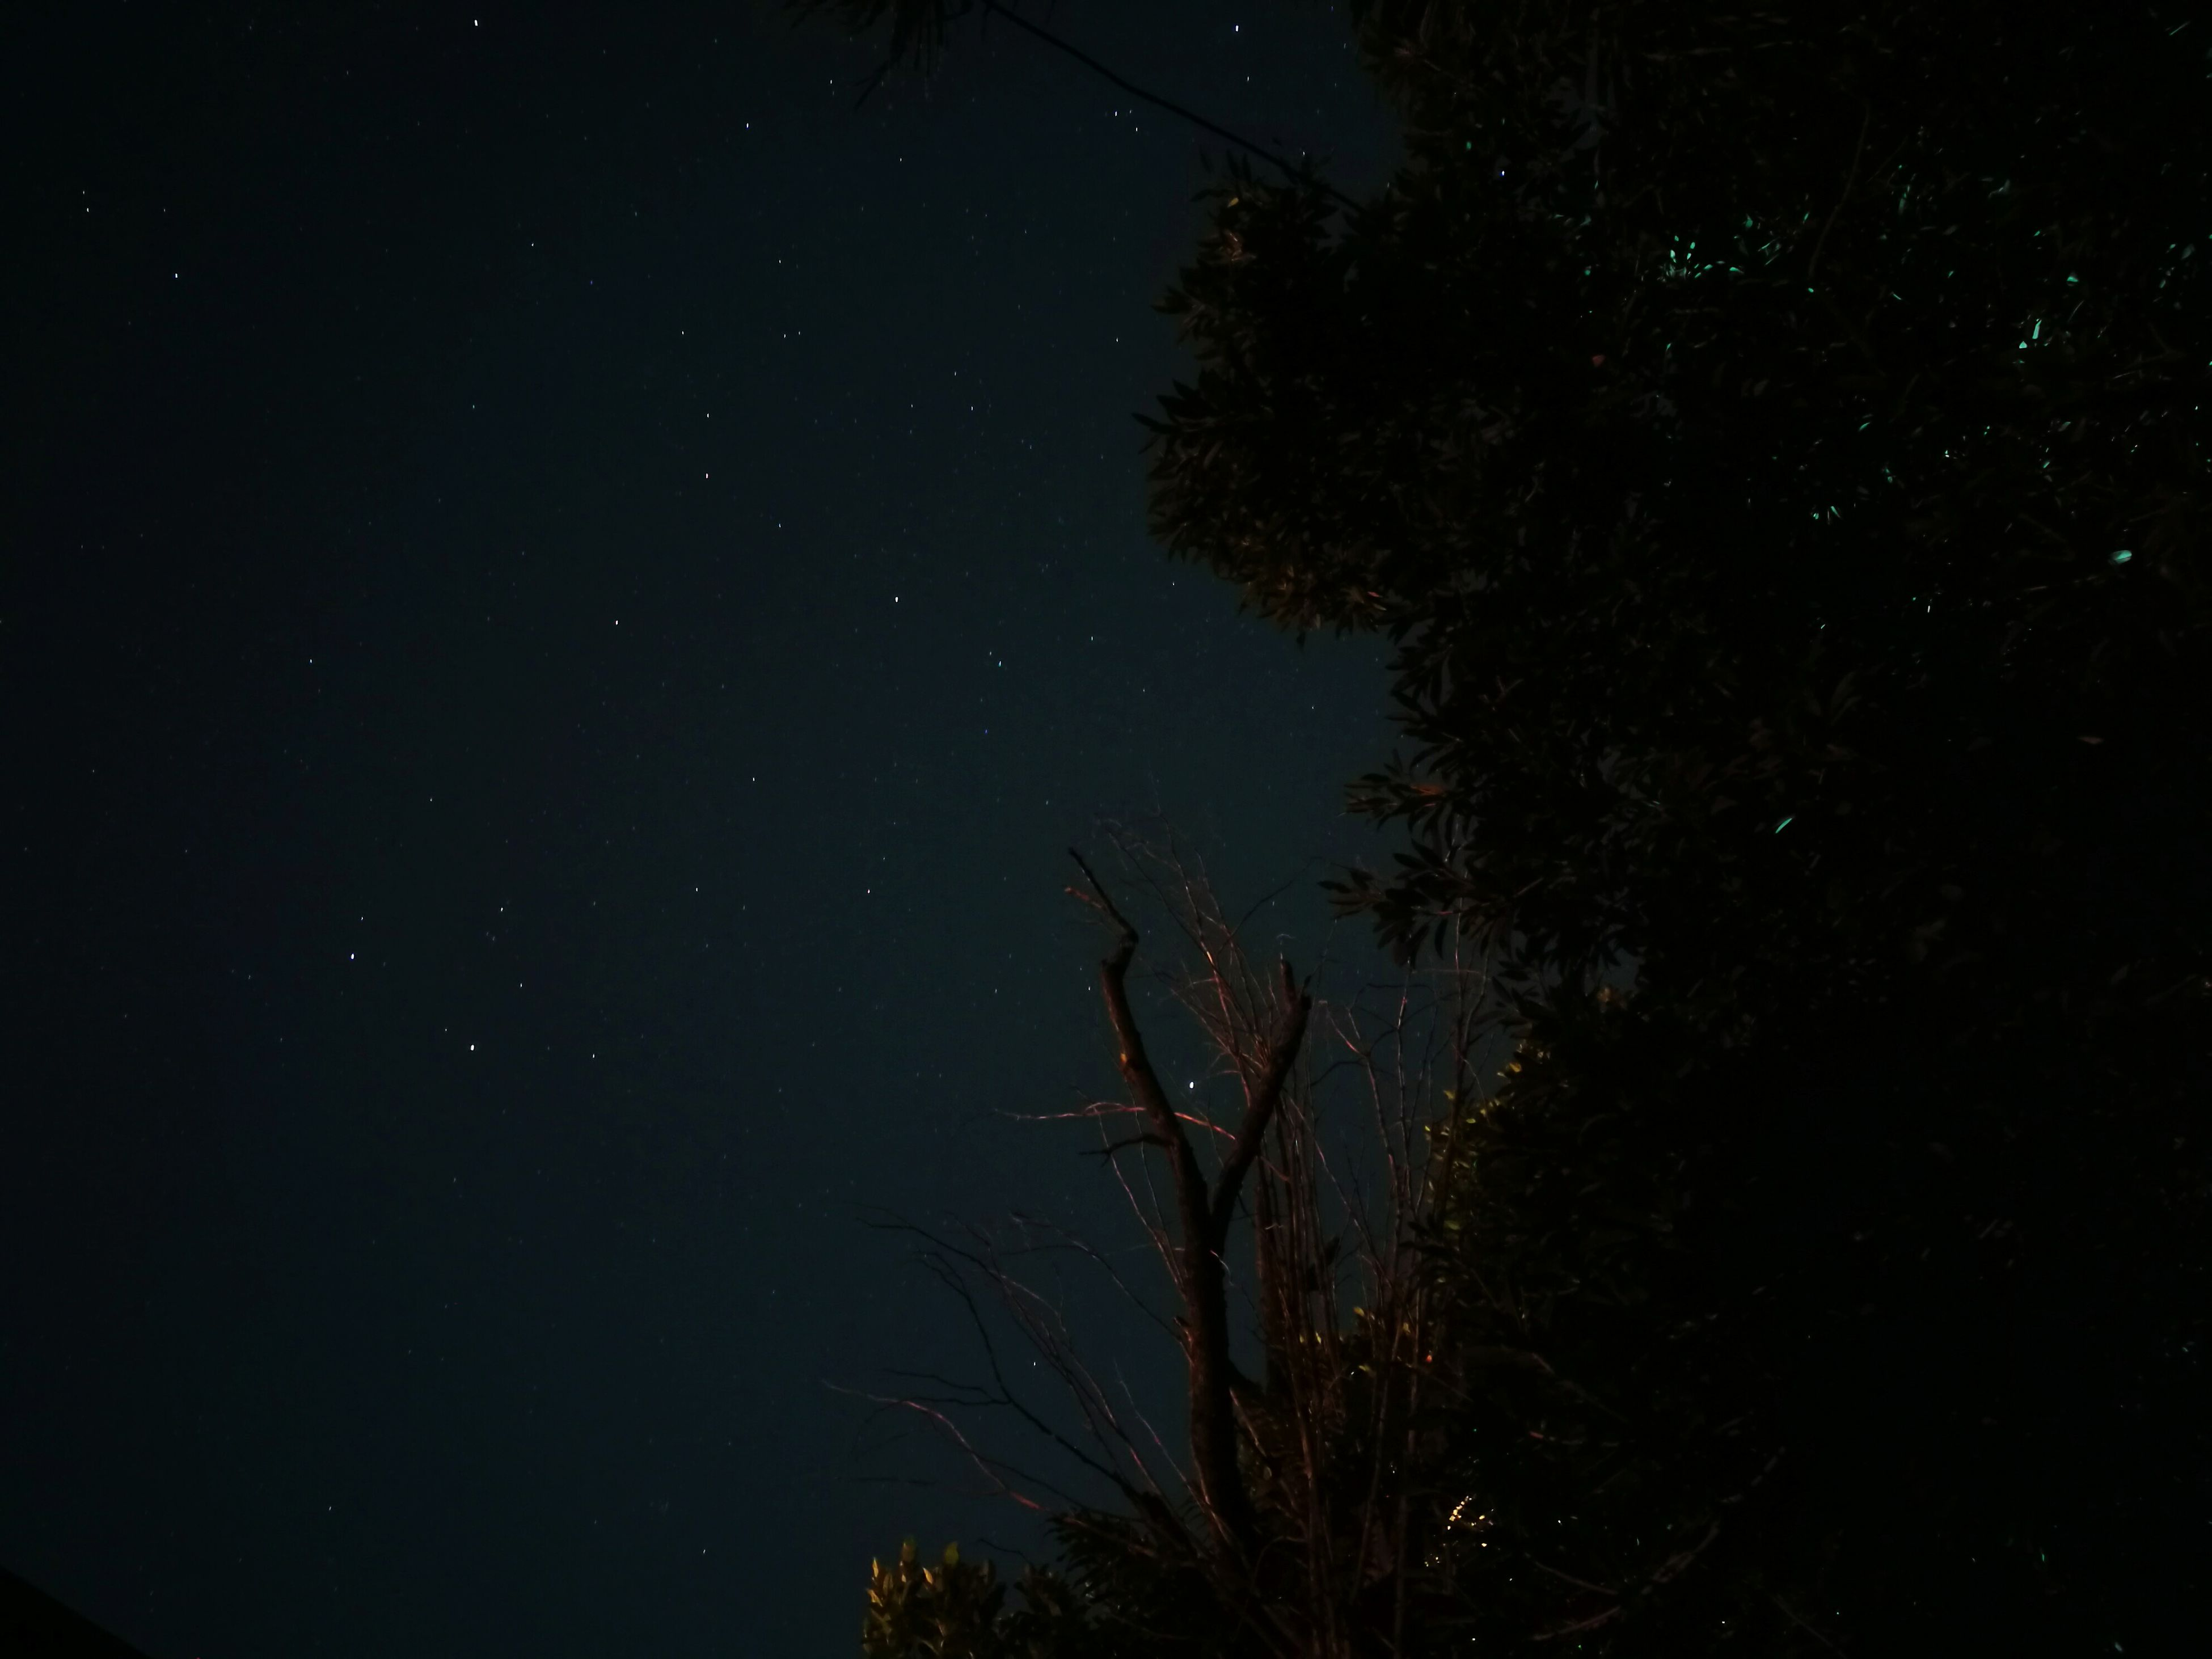 star - space, night, tree, beauty in nature, sky, astronomy, nature, low angle view, scenics, space and astronomy, tranquility, no people, outdoors, branch, star field, galaxy, space